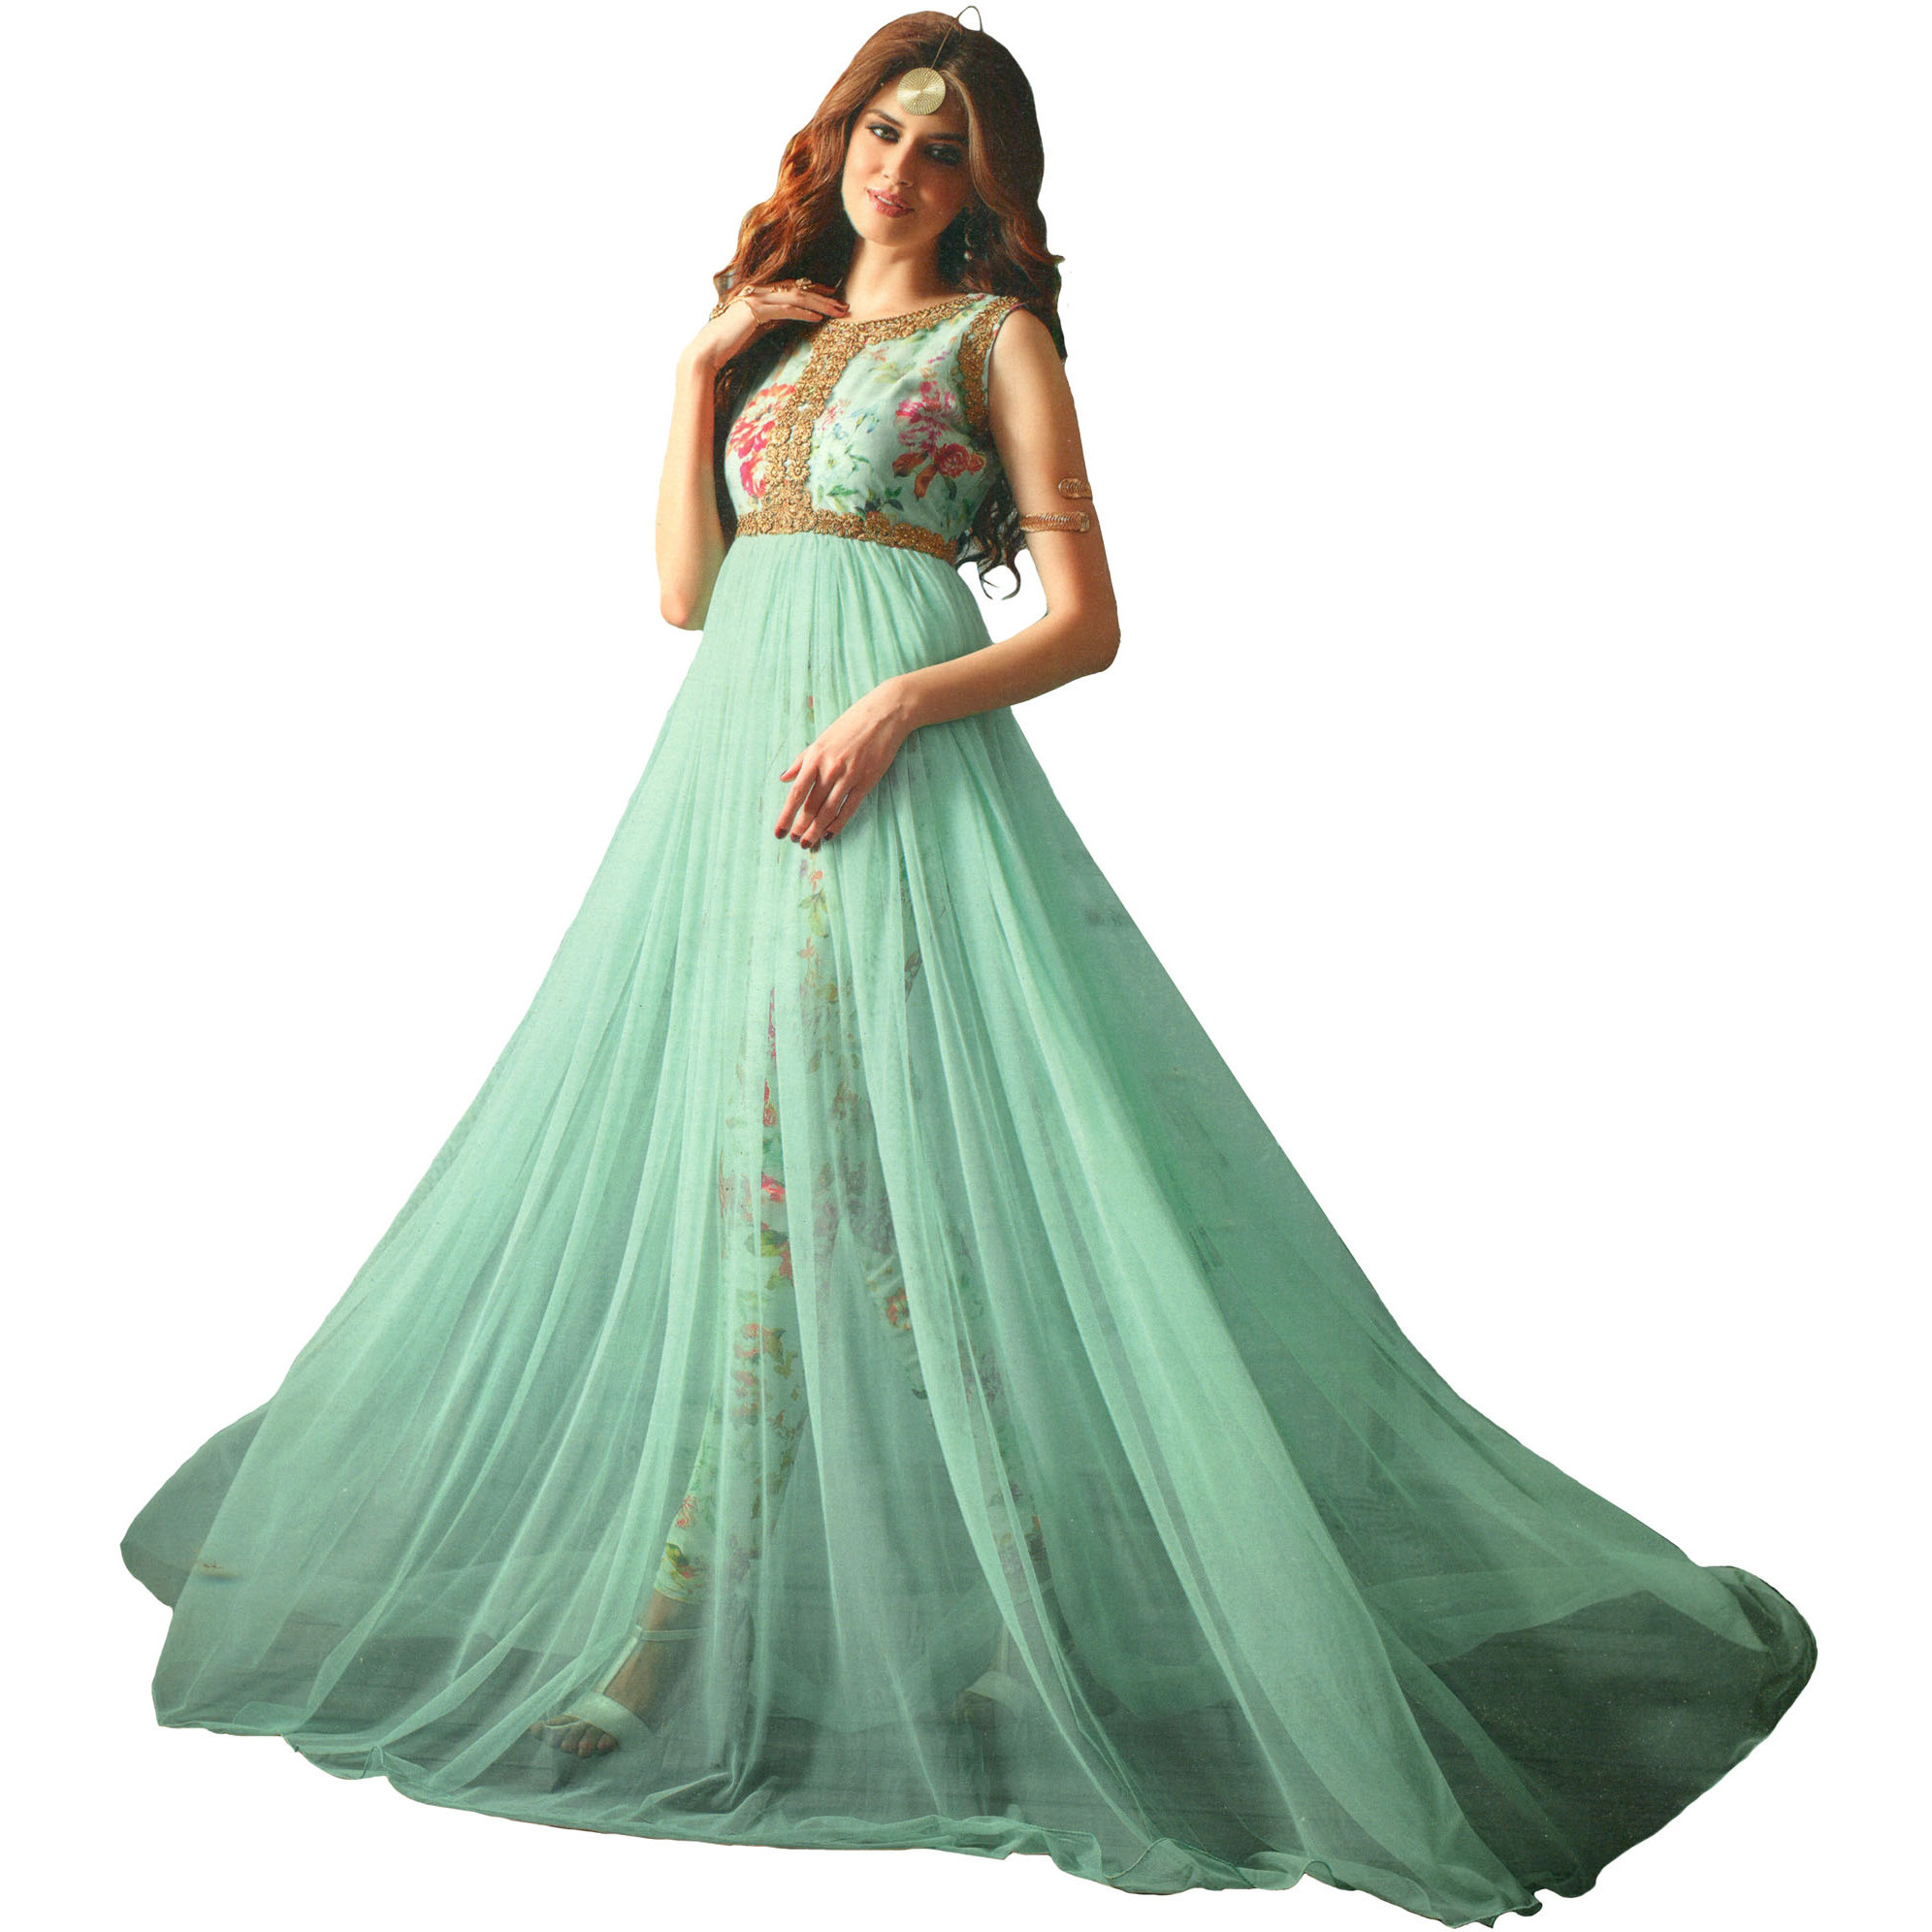 Fair-Aqua Floor Length Designer Suit with Floral-Print and Zari-Embroidery on Neck